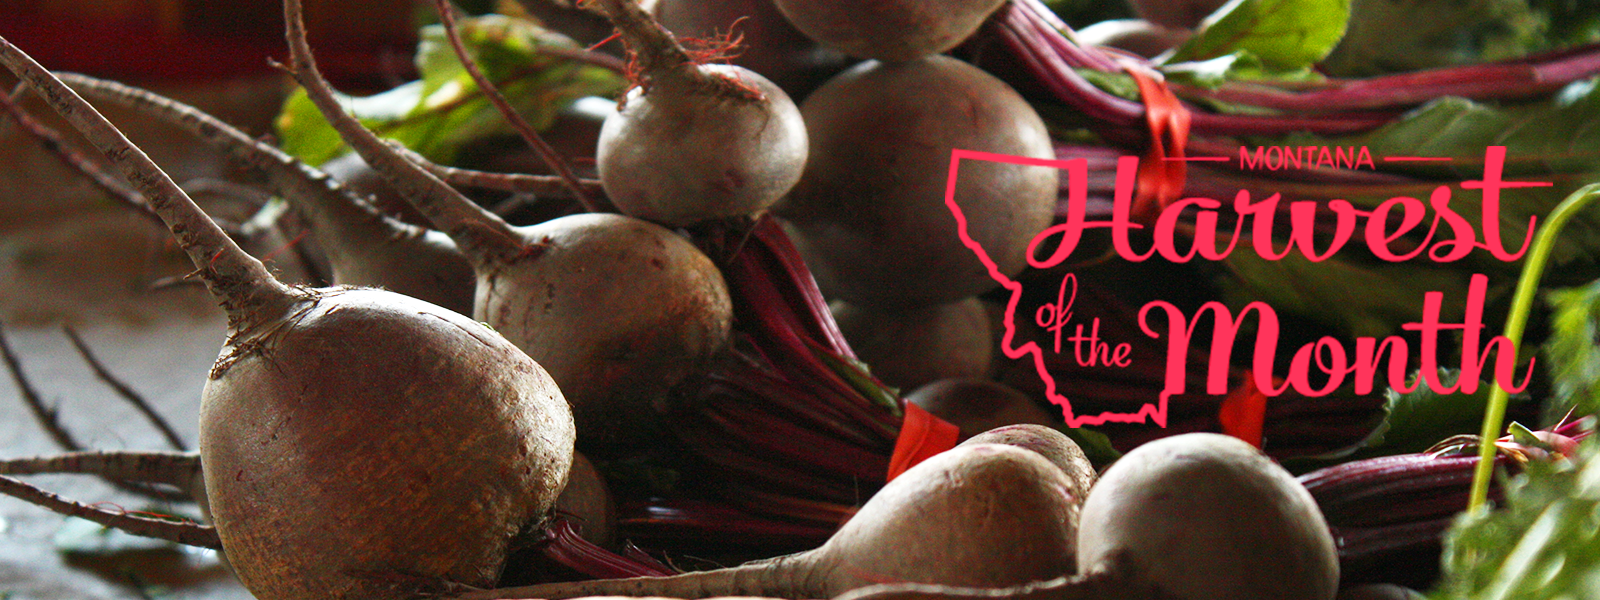 Beets are February's Harvest of the Month!